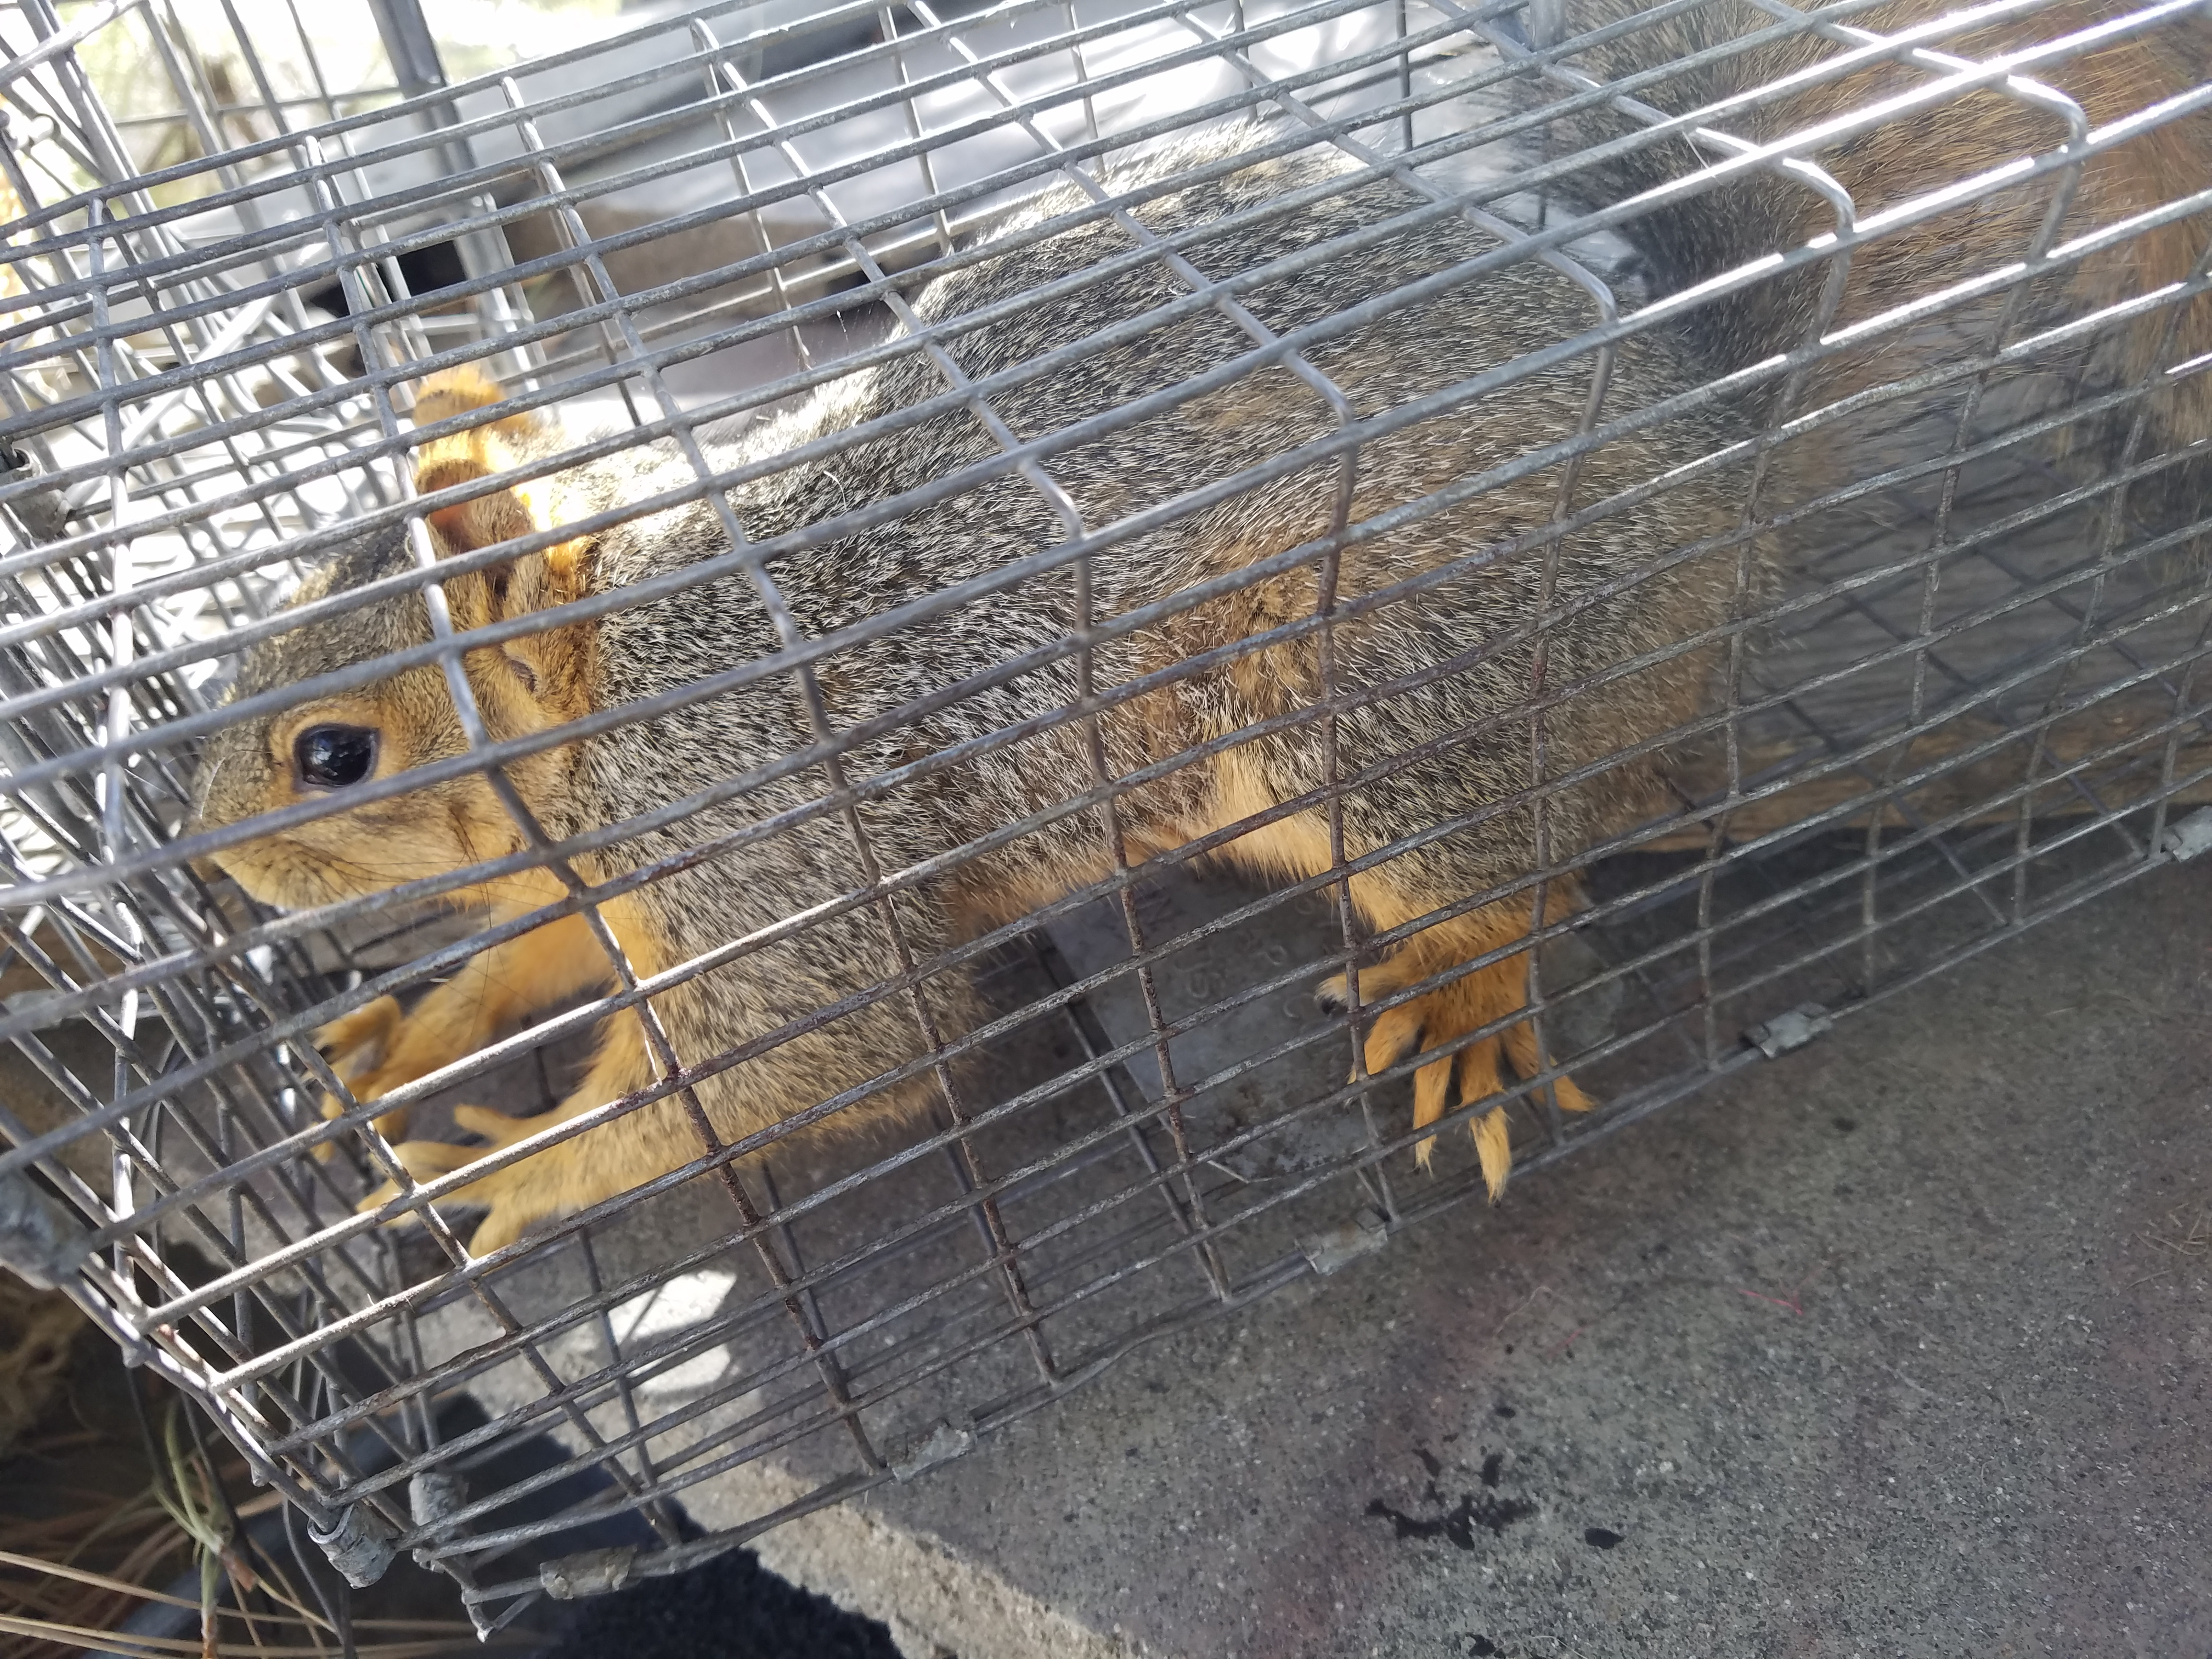 Animal Damage Control – Help with Animal Trapping and Wildlife Problems